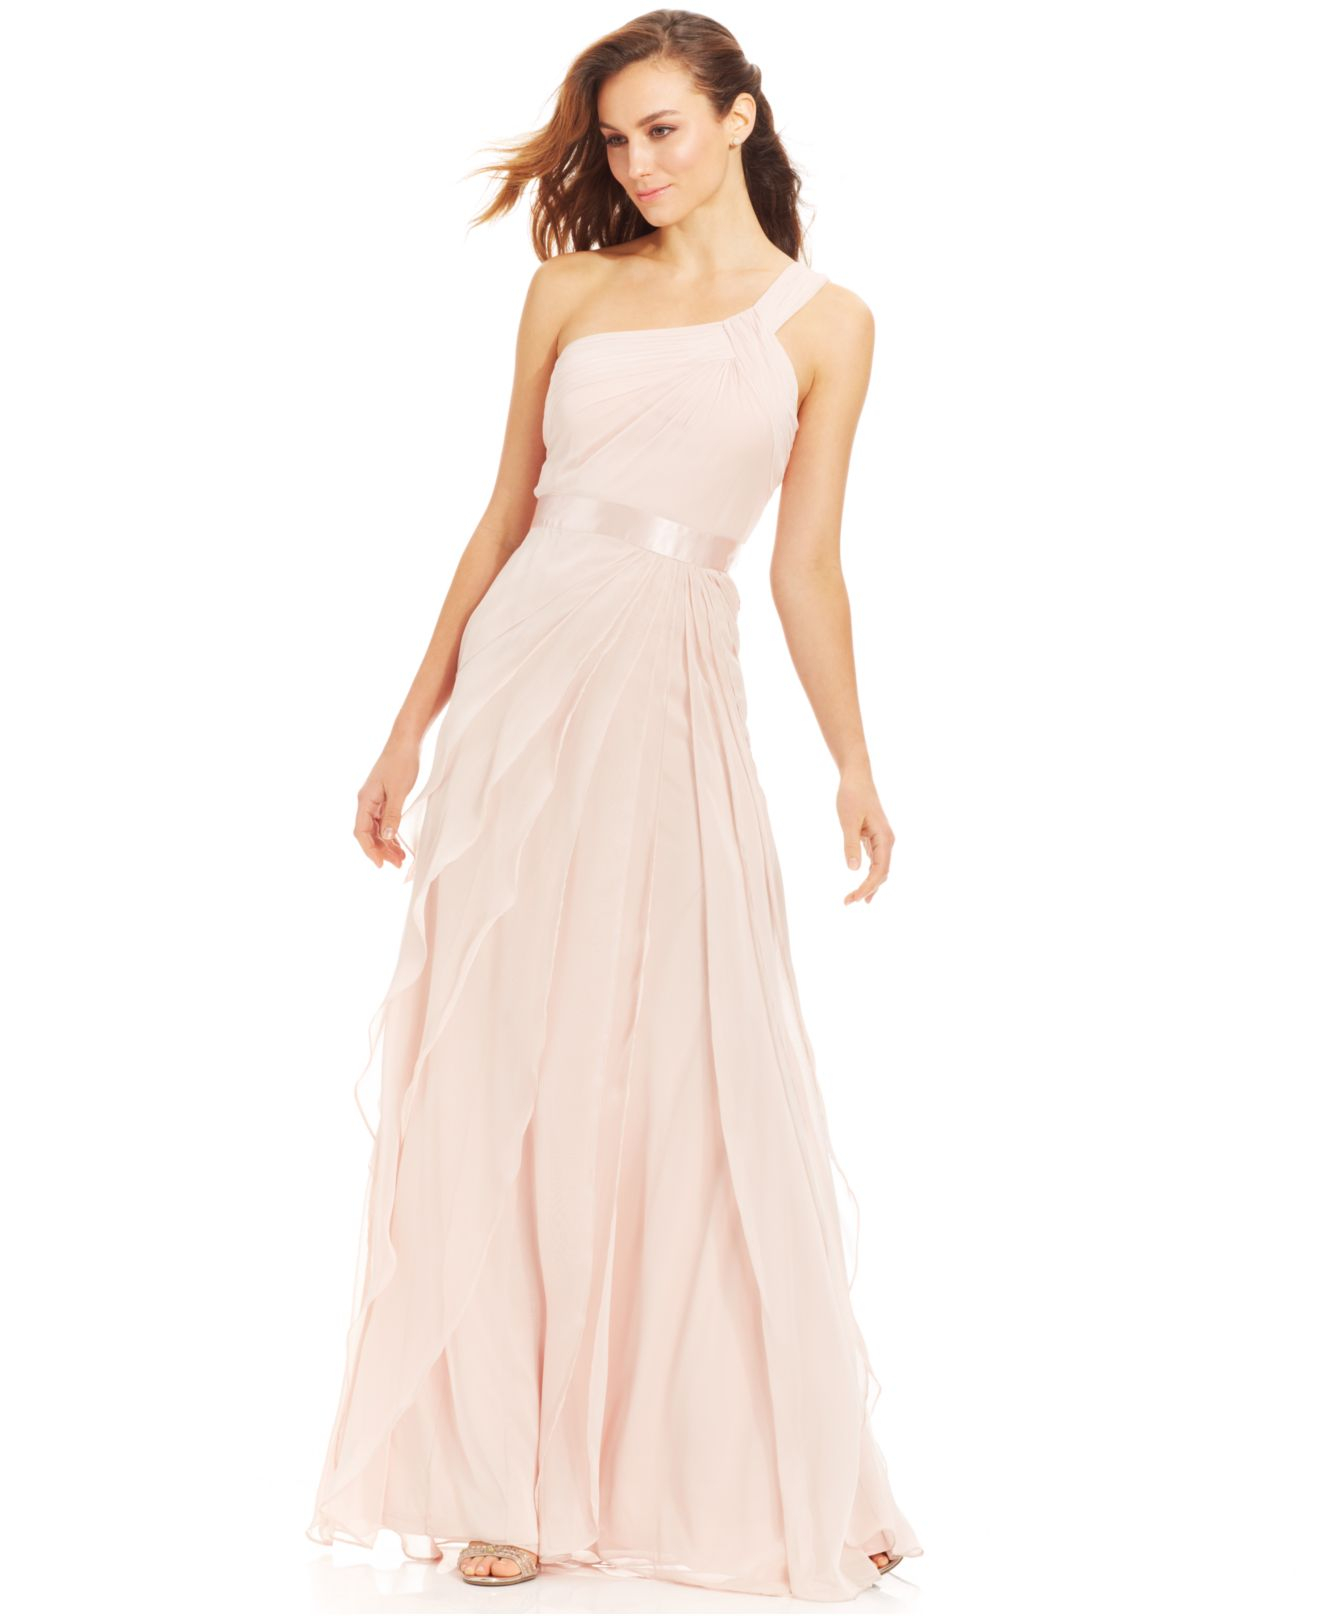 Lyst - Adrianna Papell One-shoulder Tiered Chiffon Gown in Natural